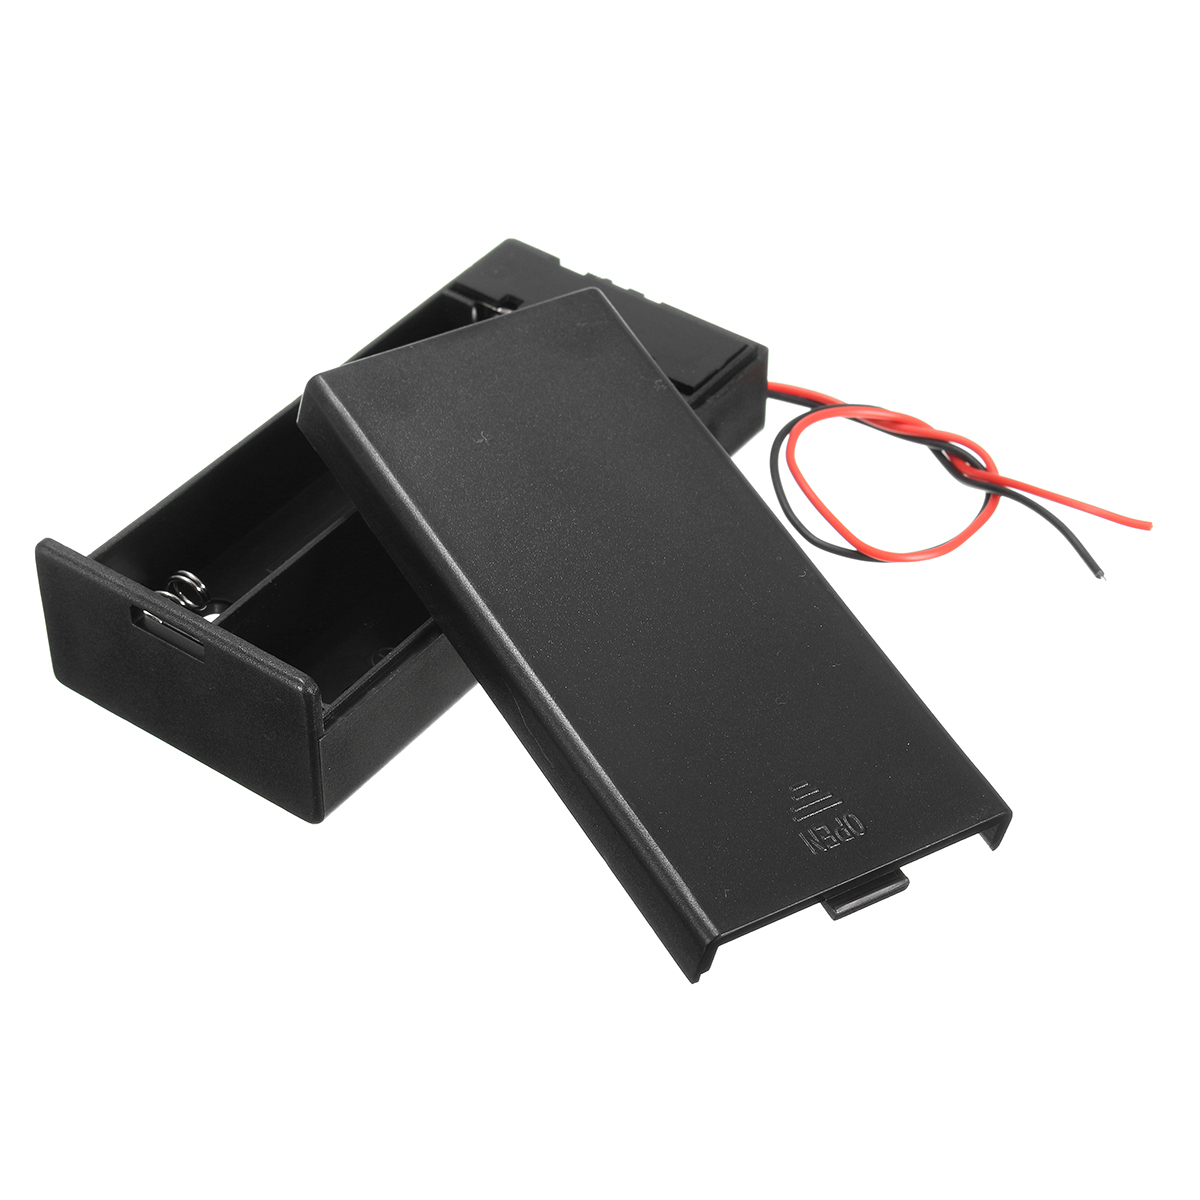 Plastic Battery Holder Storage Box Case Container w/ON/OFF Switch For 2x18650 Batteries 3.7V